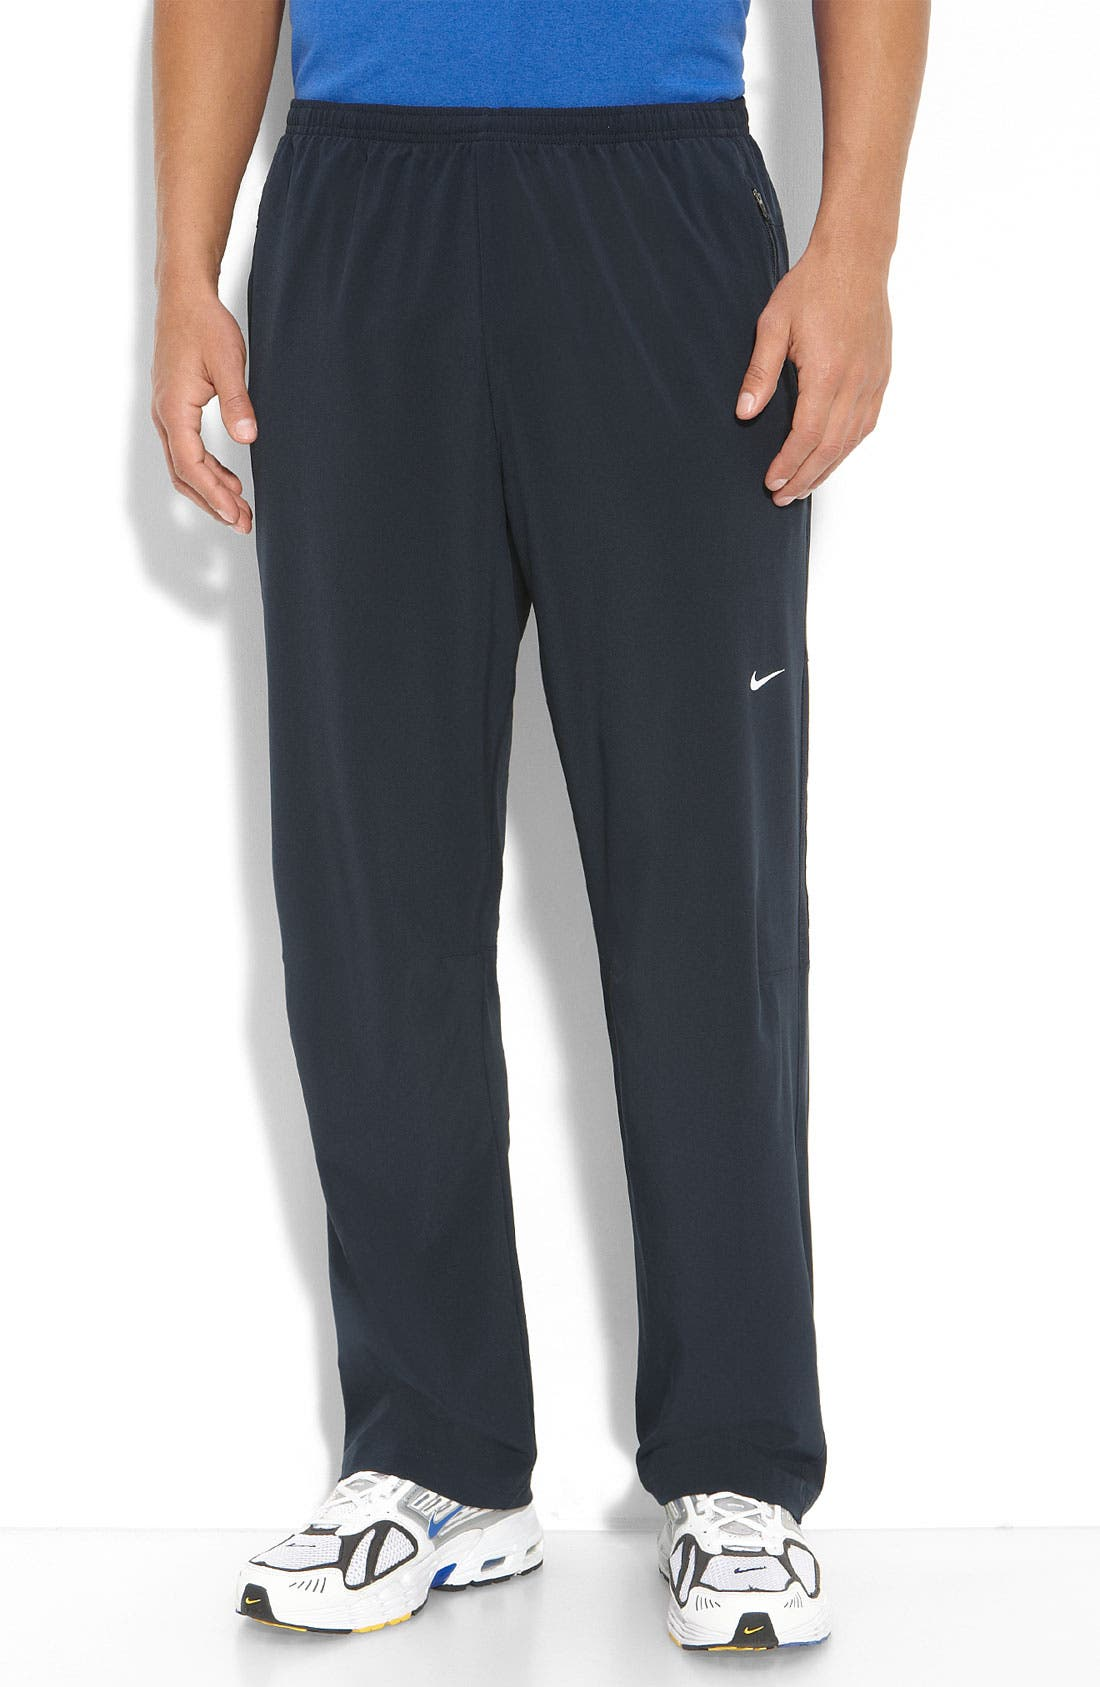 Main Image - Nike Dri-FIT Stretch Woven Pants